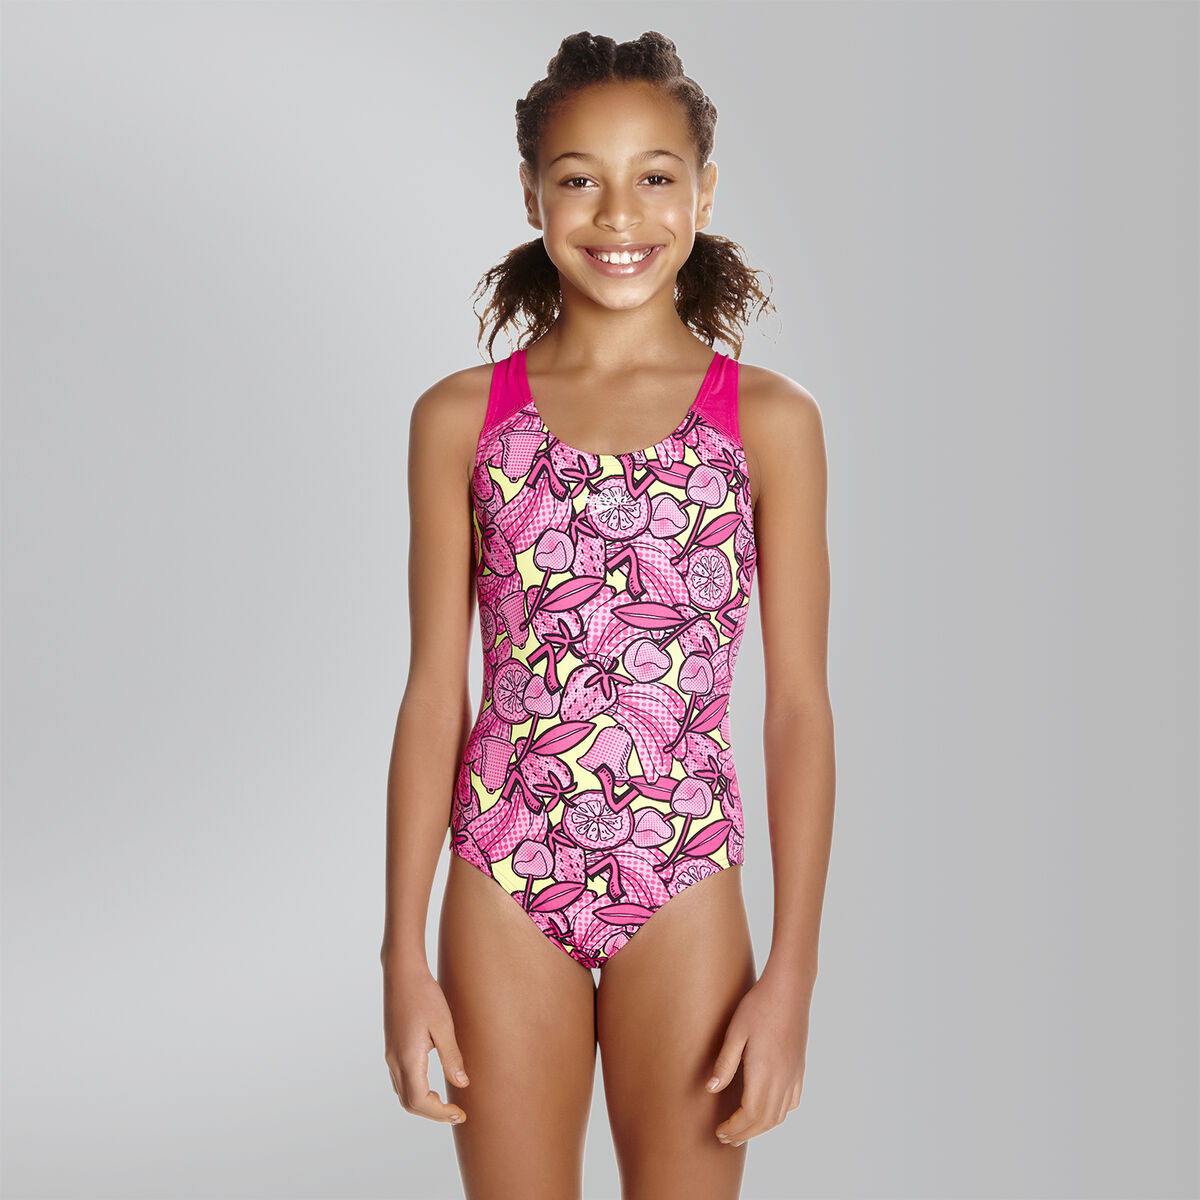 Comet Crush Splashback Swimsuit